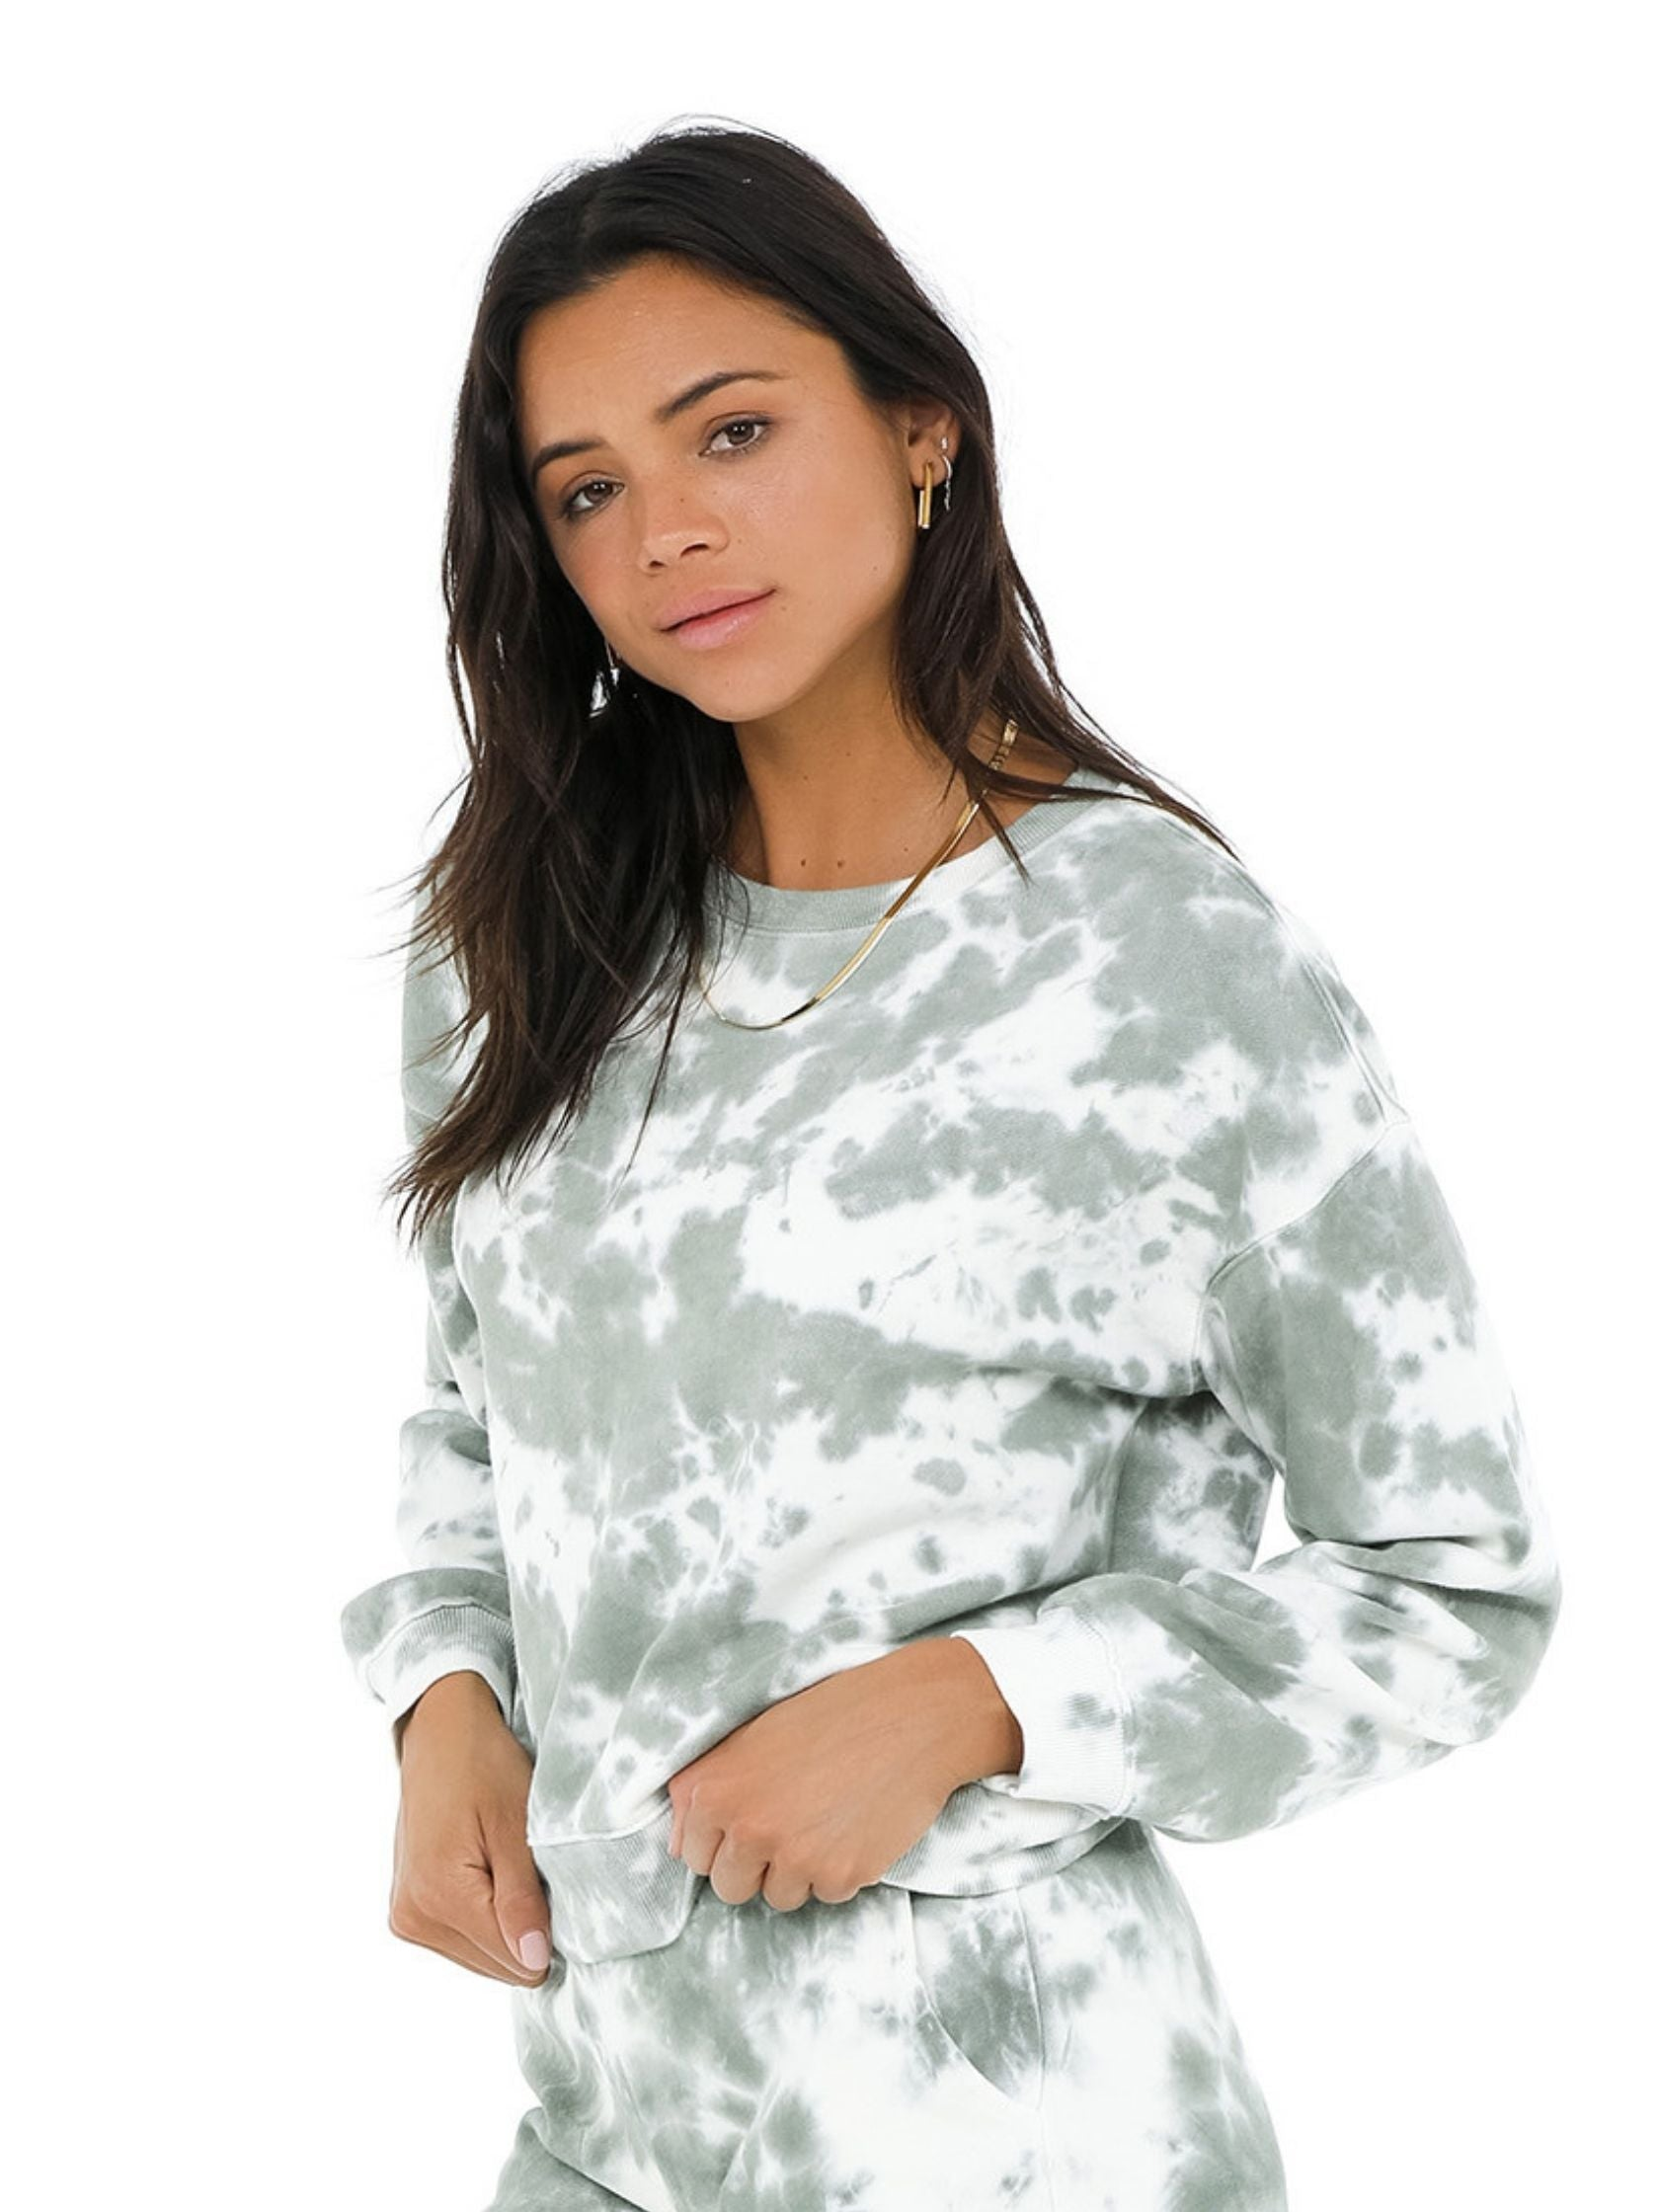 Women wearing a sweatshirt rental from 525 called Tie Dye Basic Crew